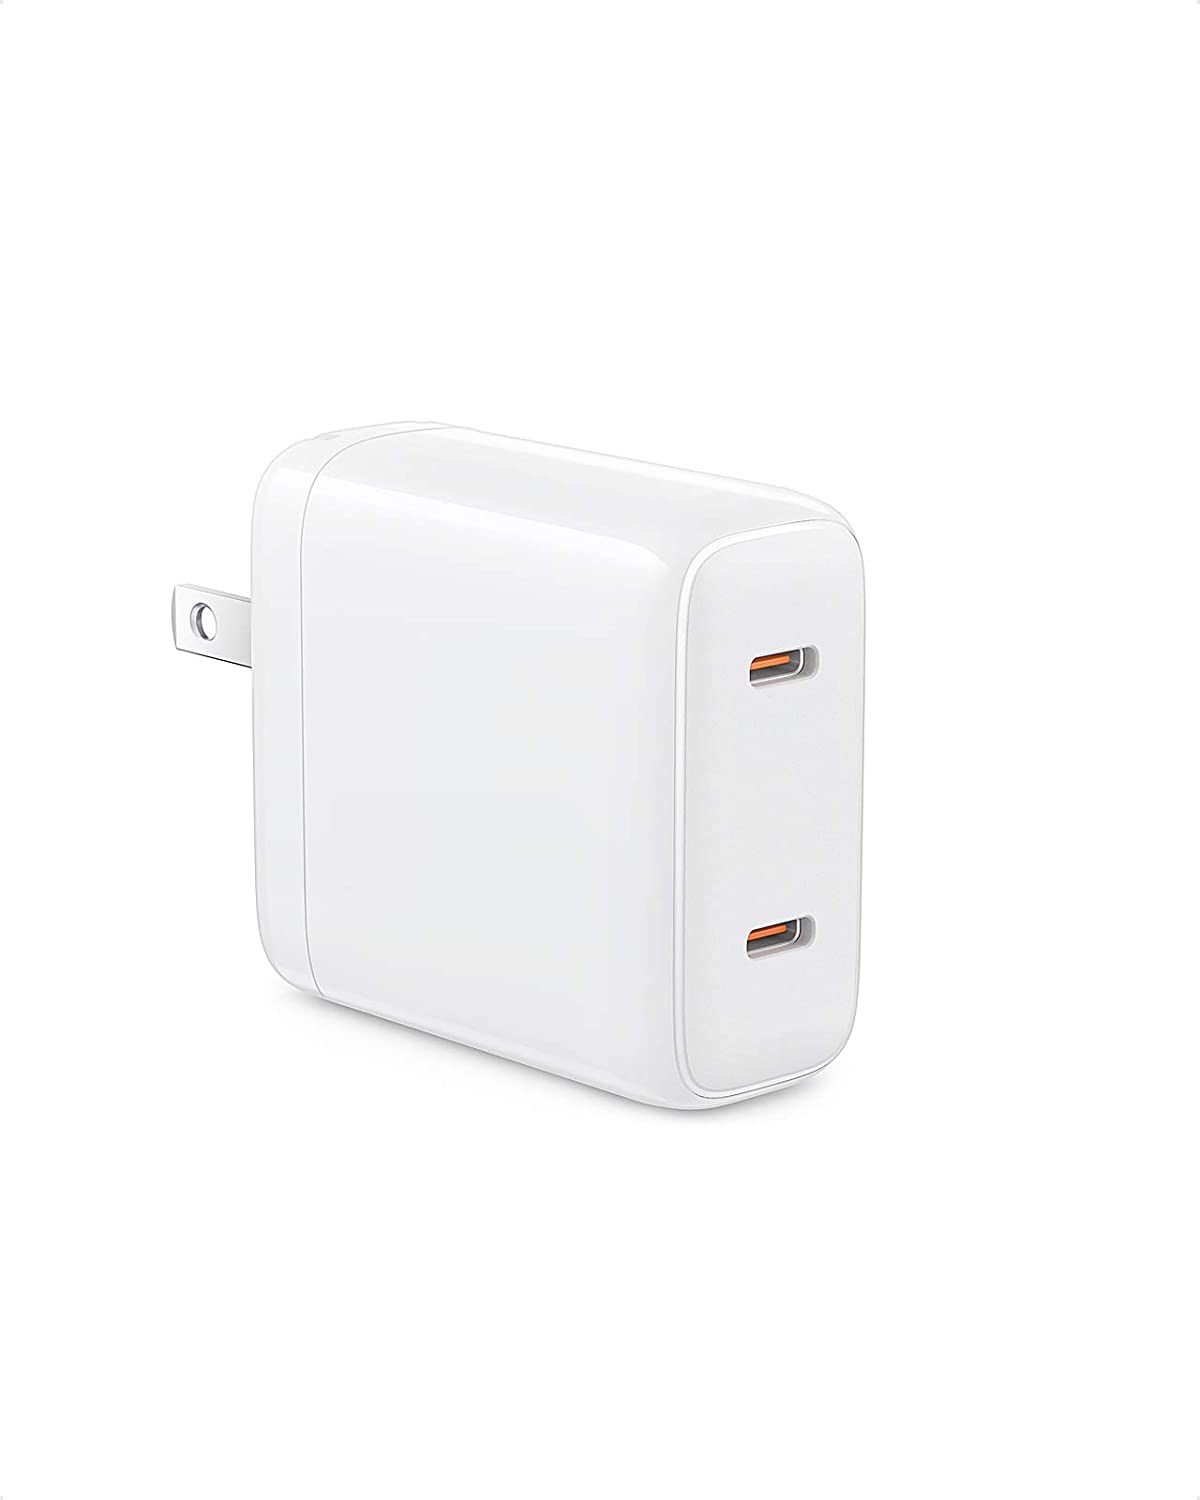 USB C Charger, WEMISS iPhone Charger, 40W PD Charger with Foldable Plug, Dual 20W Fast Charger for iPhone12/12 Pro/12 Pro Max, iPhone 11/11 Pro/XS/XR/X, Galaxy S10/S9, iPad Pro and More (White)